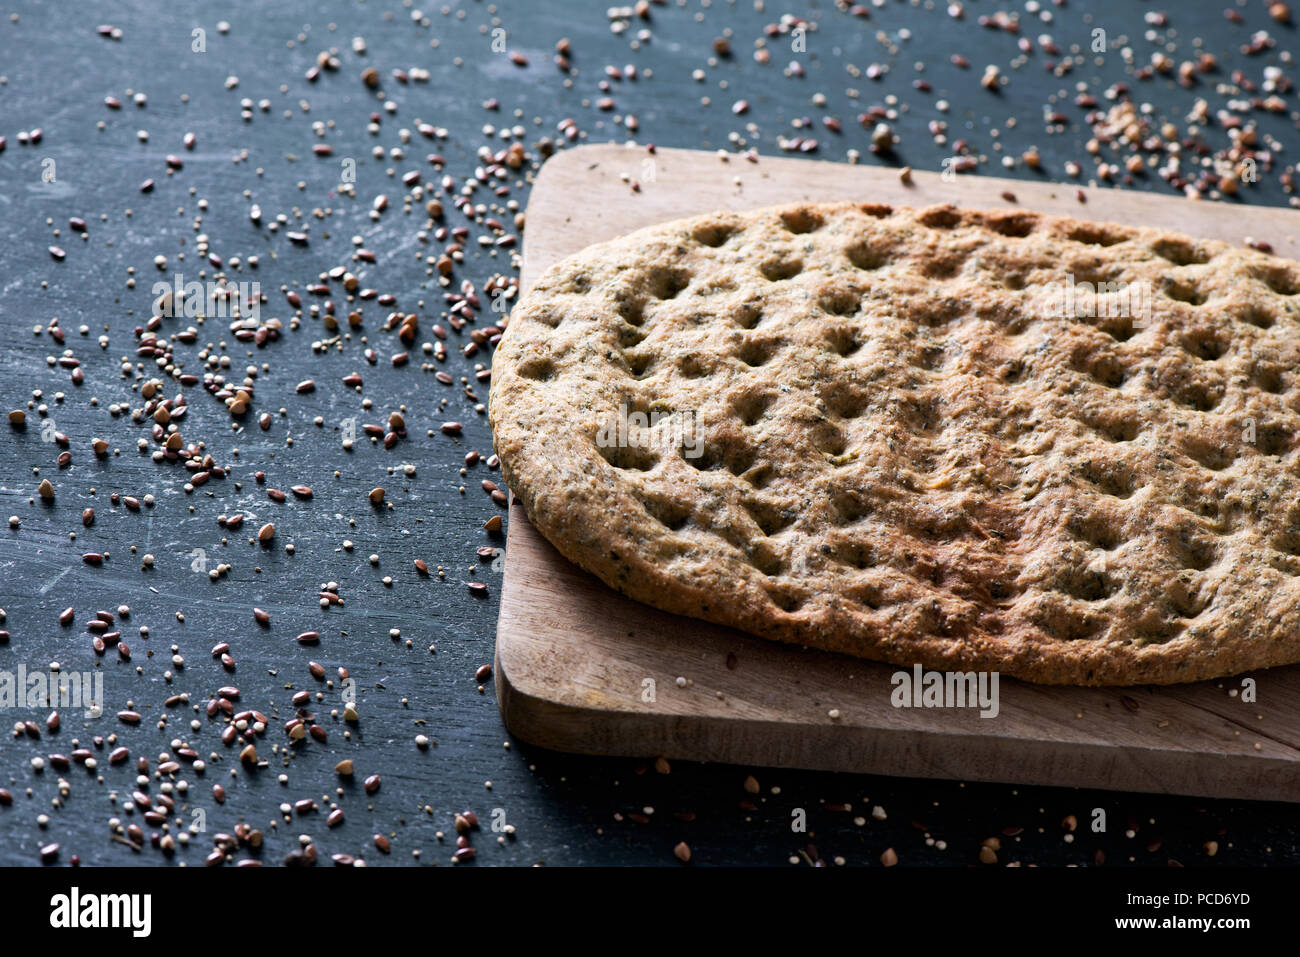 closeup of a kale flatbread on a chopping board, placed on a dark green rustic wooden table sprinkled with different spices - Stock Image